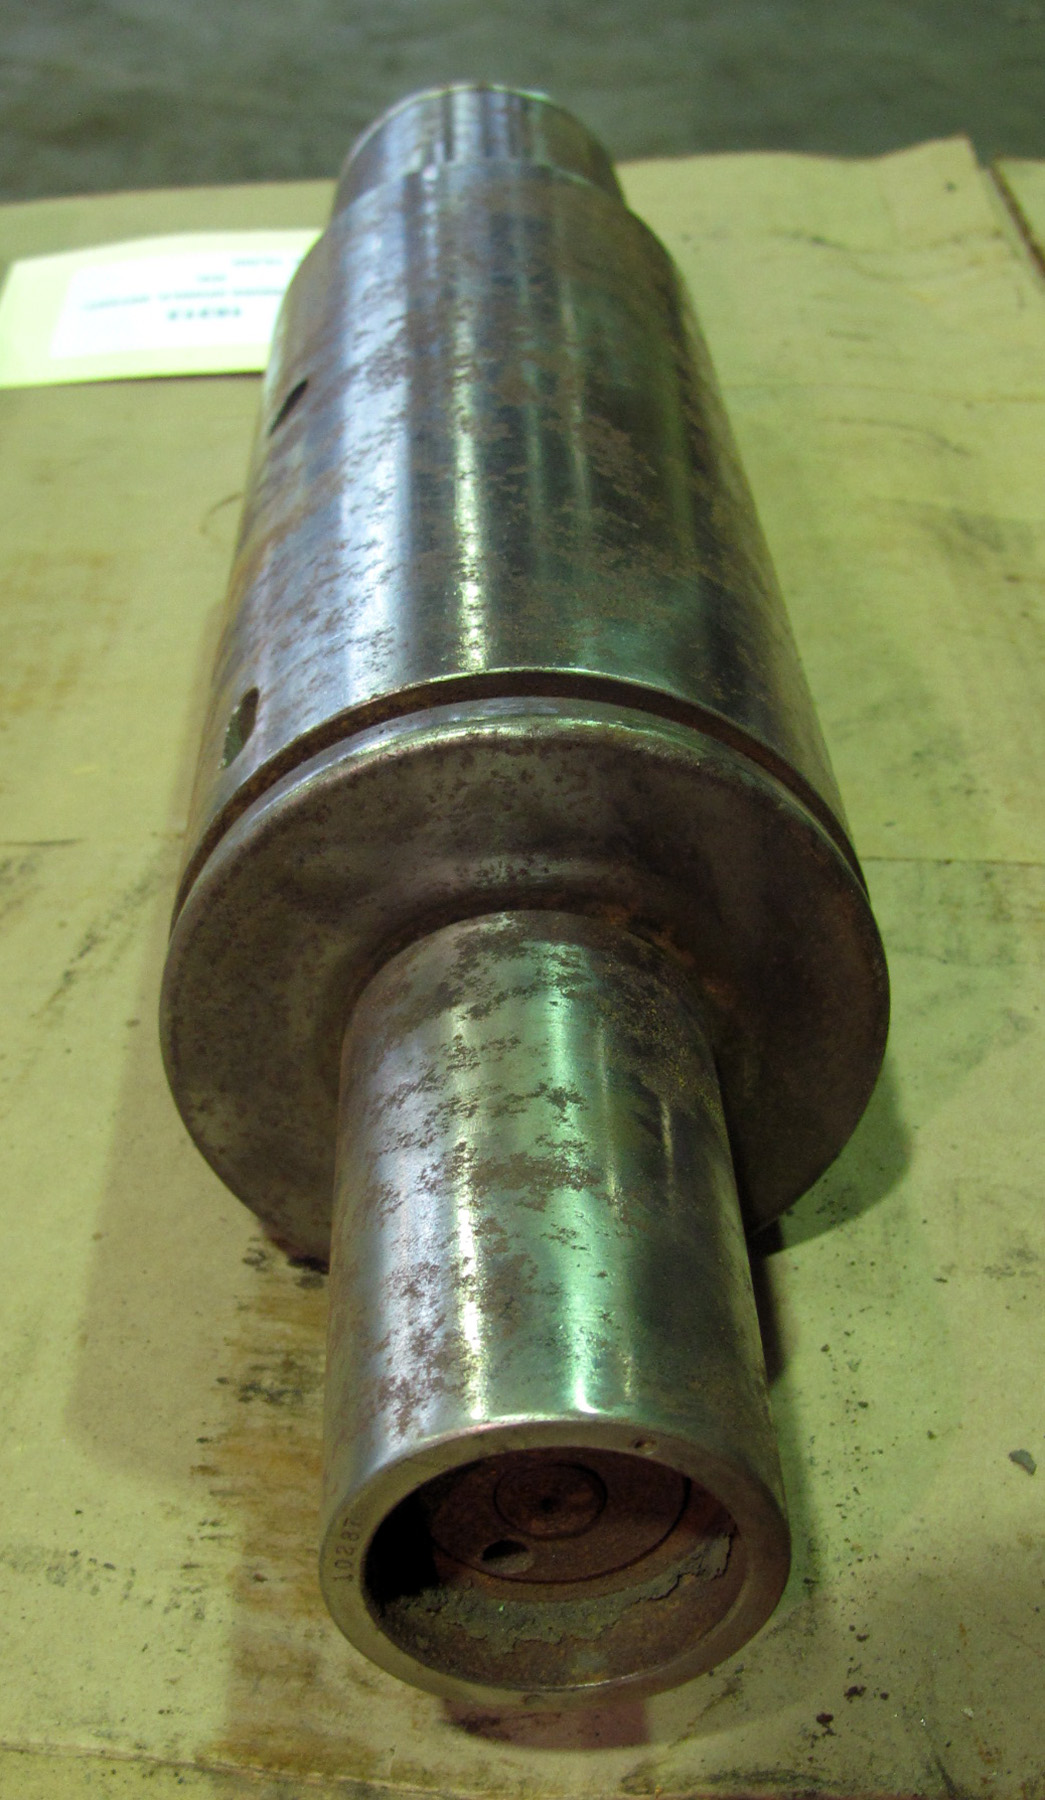 USED, GRINDING SPINDLE, BRYANT MODEL 271 G-18171